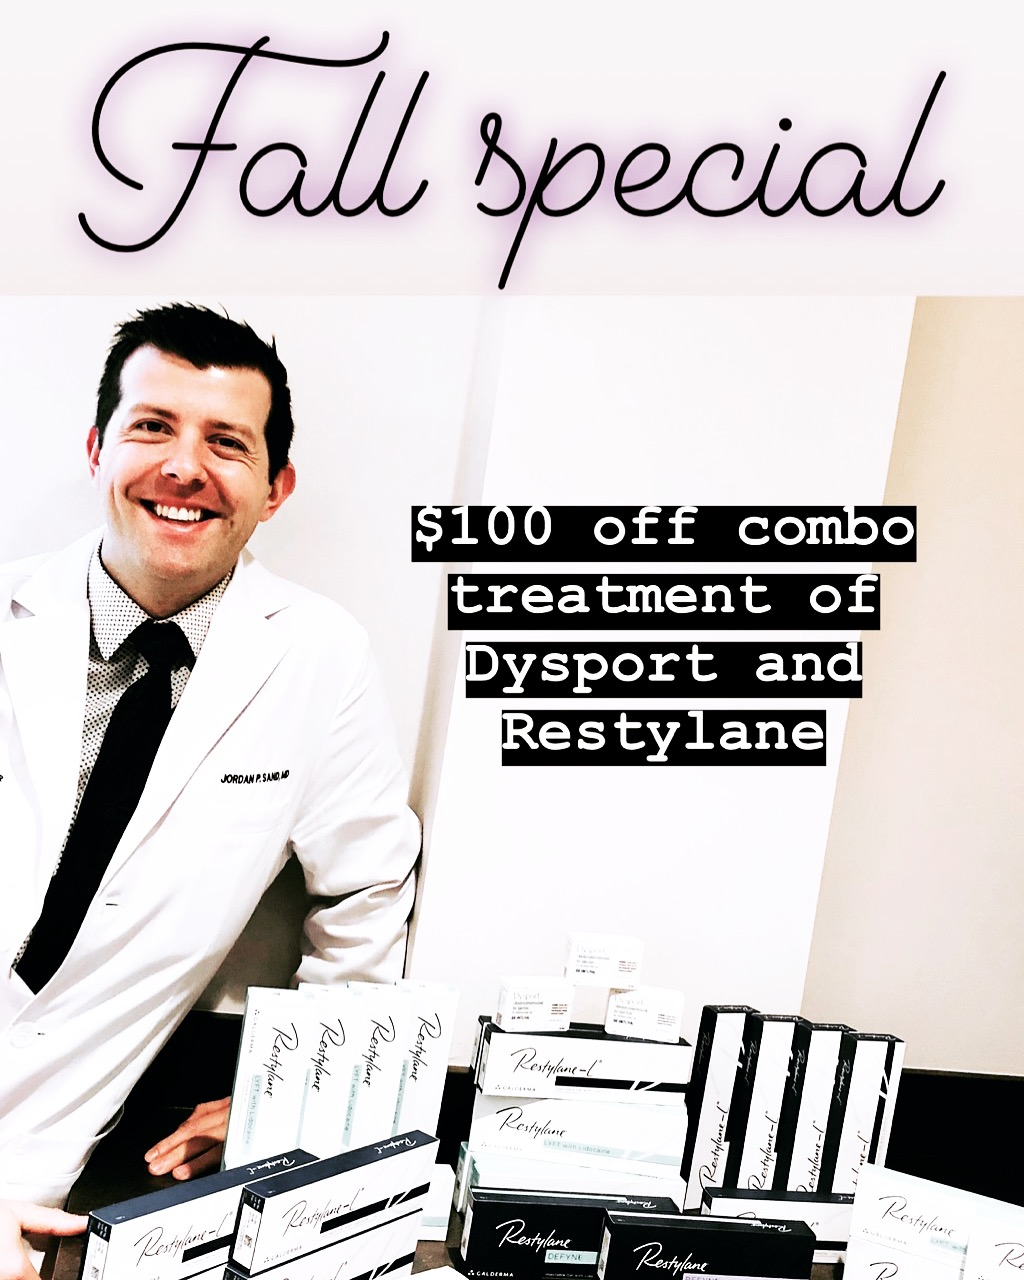 Fall Dysport and Restylane Special!